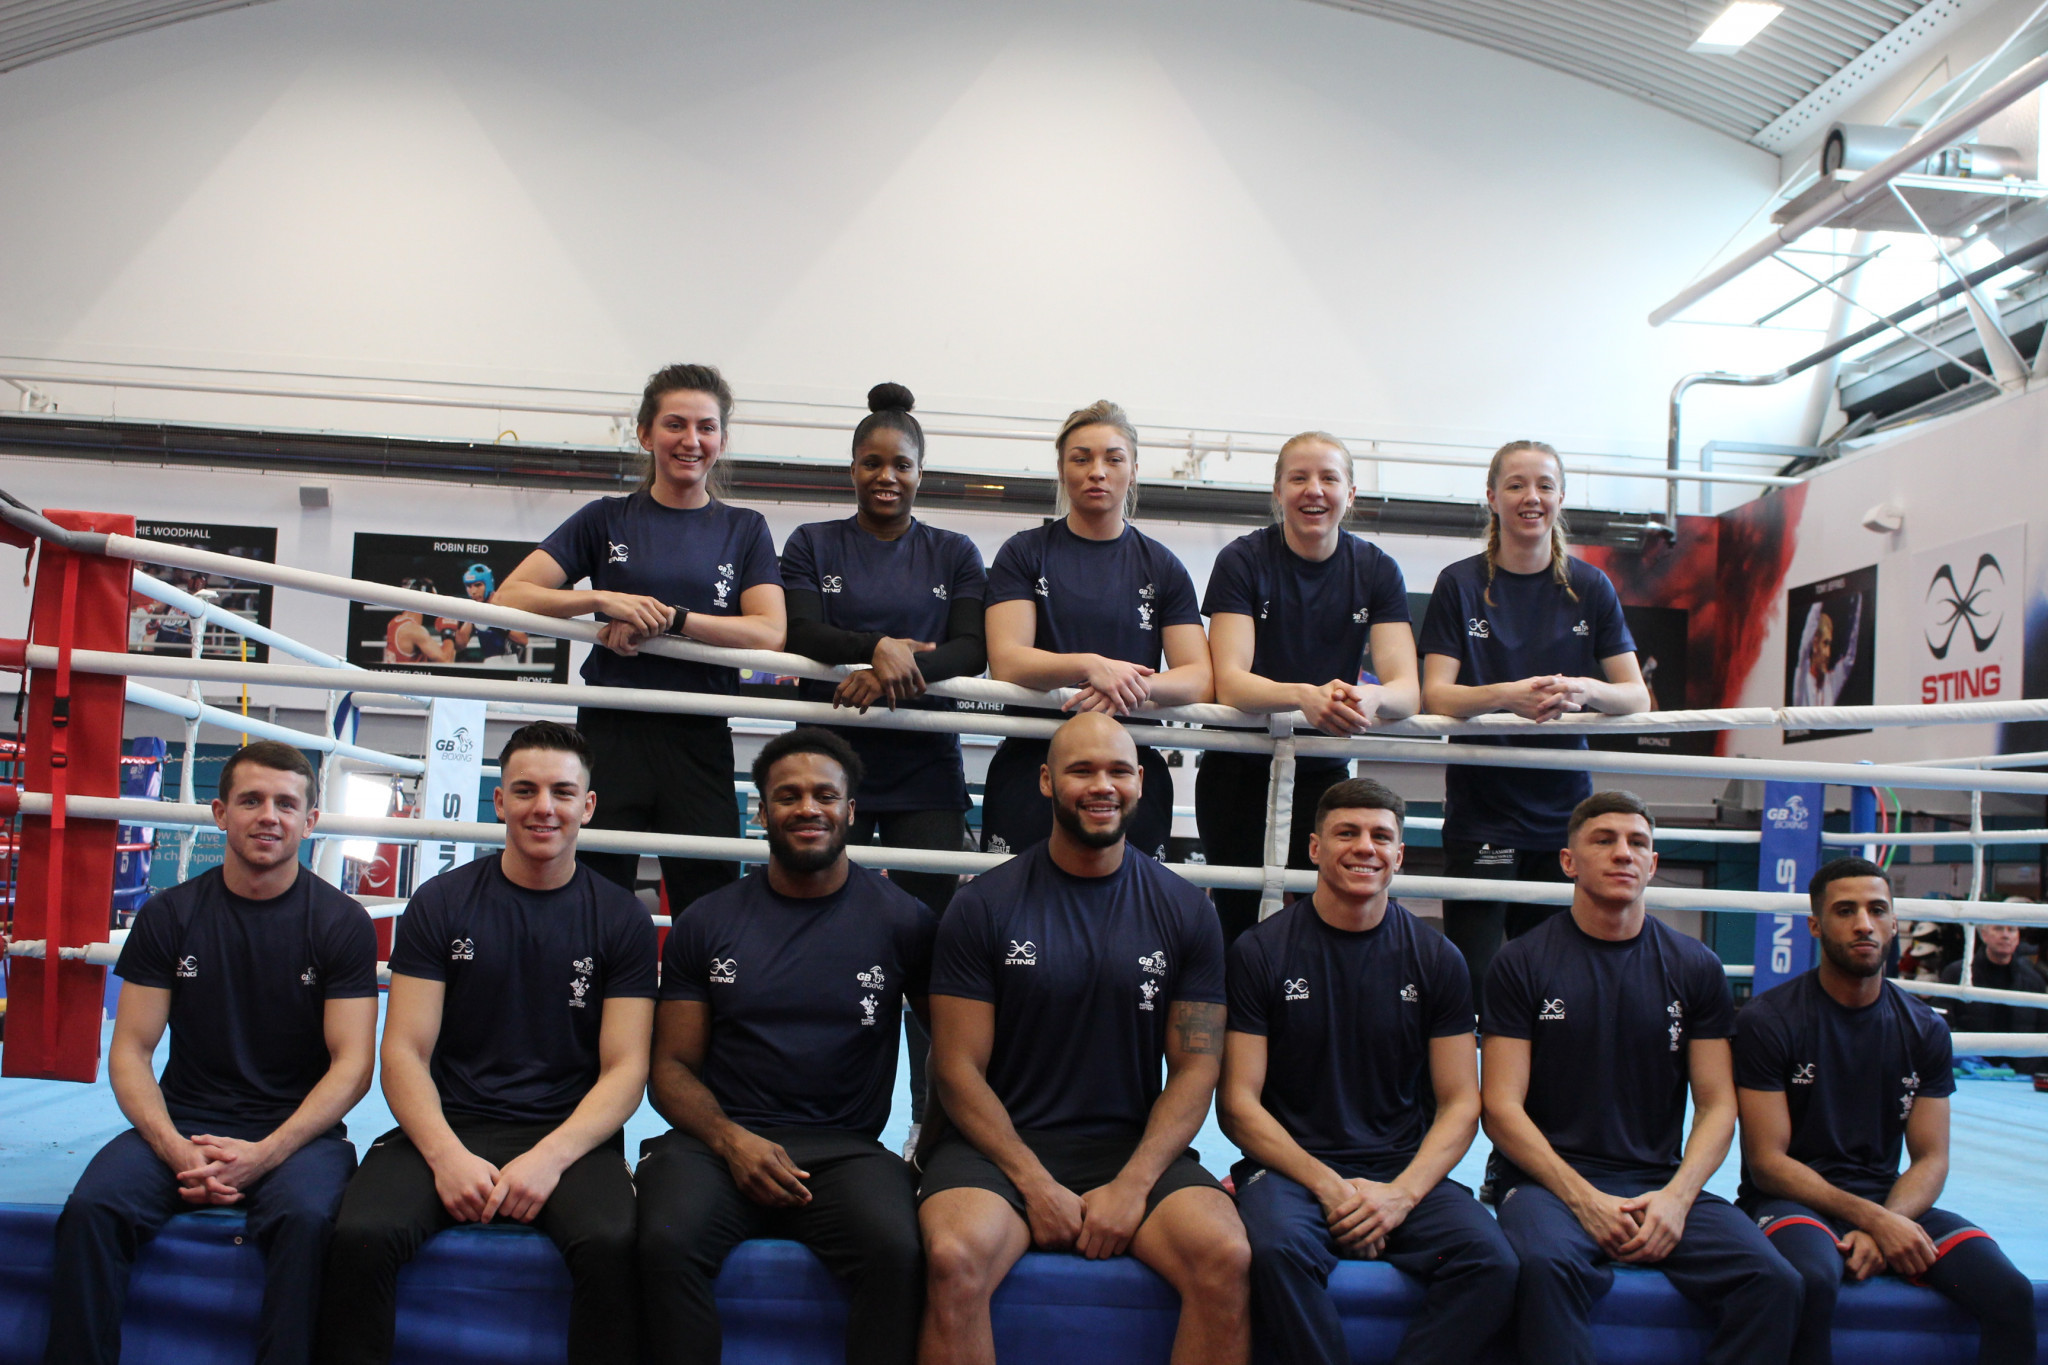 The GB Boxing team vying for qualification in London in March, with the most experienced member of the squad, Frazer Clarke, centre ©Getty Images